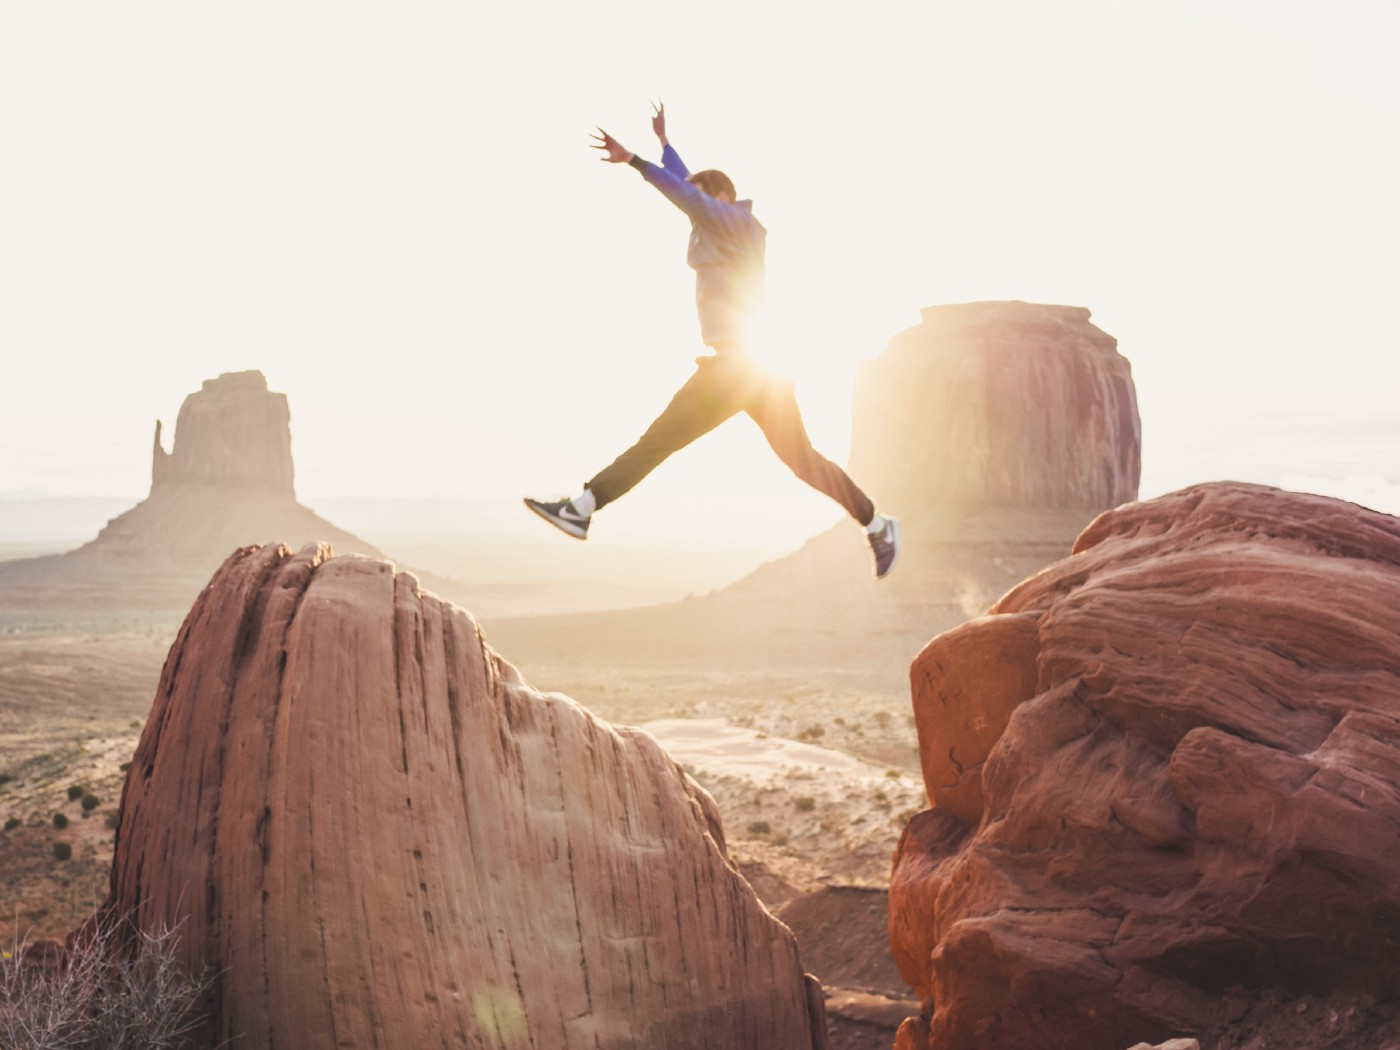 Person wearing Nike sneakers with raised arms jumping from rock to rock in rocky desert. Sunset in the background.